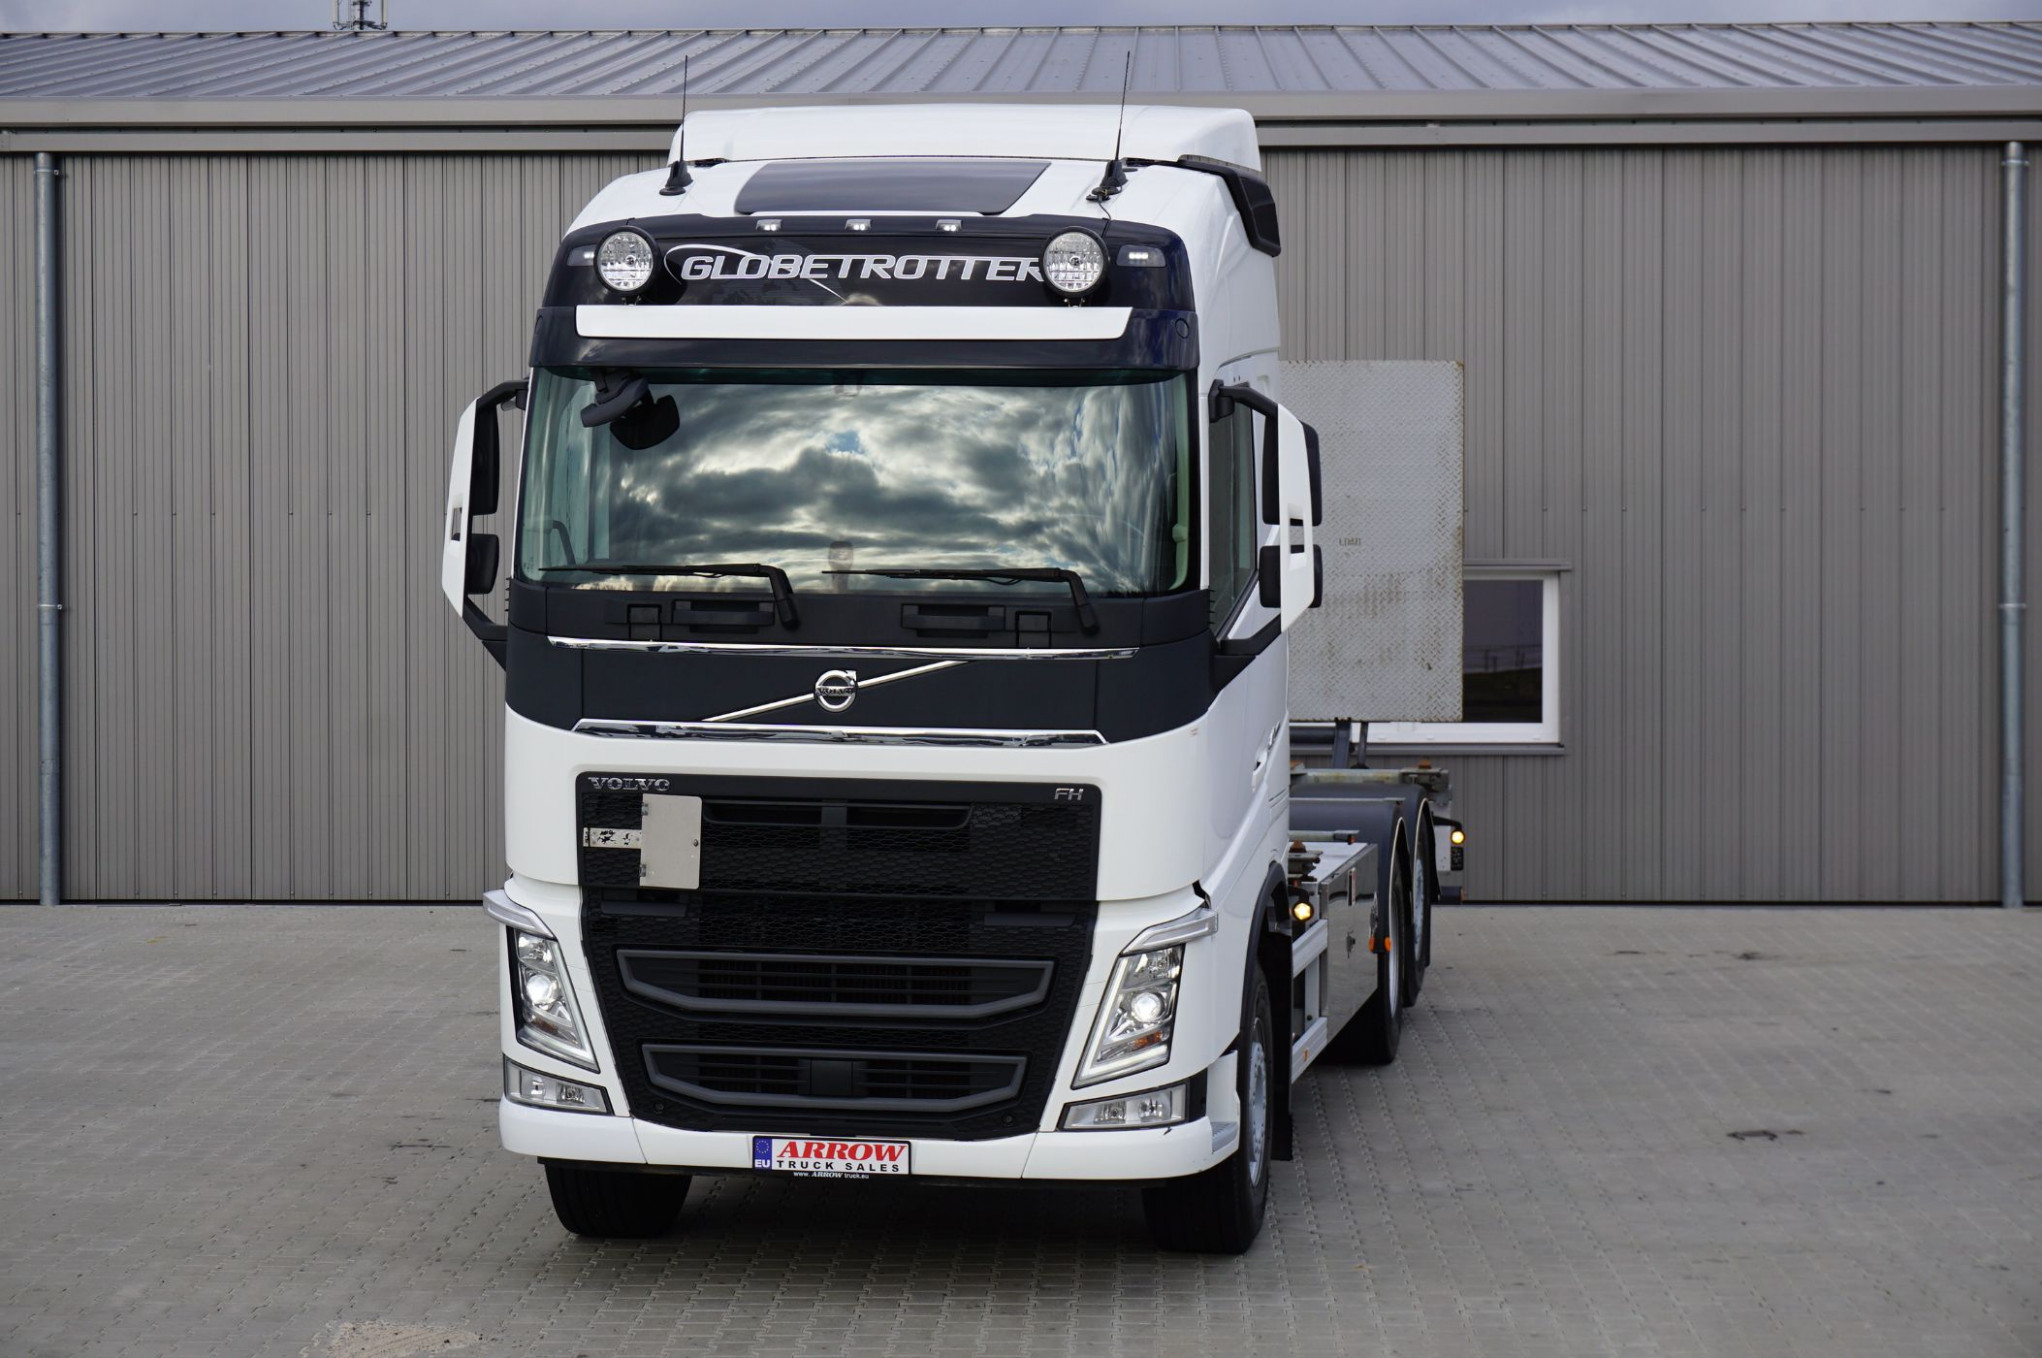 Truck Trader Online: All Makes, All Models at Arrow Truck Sales